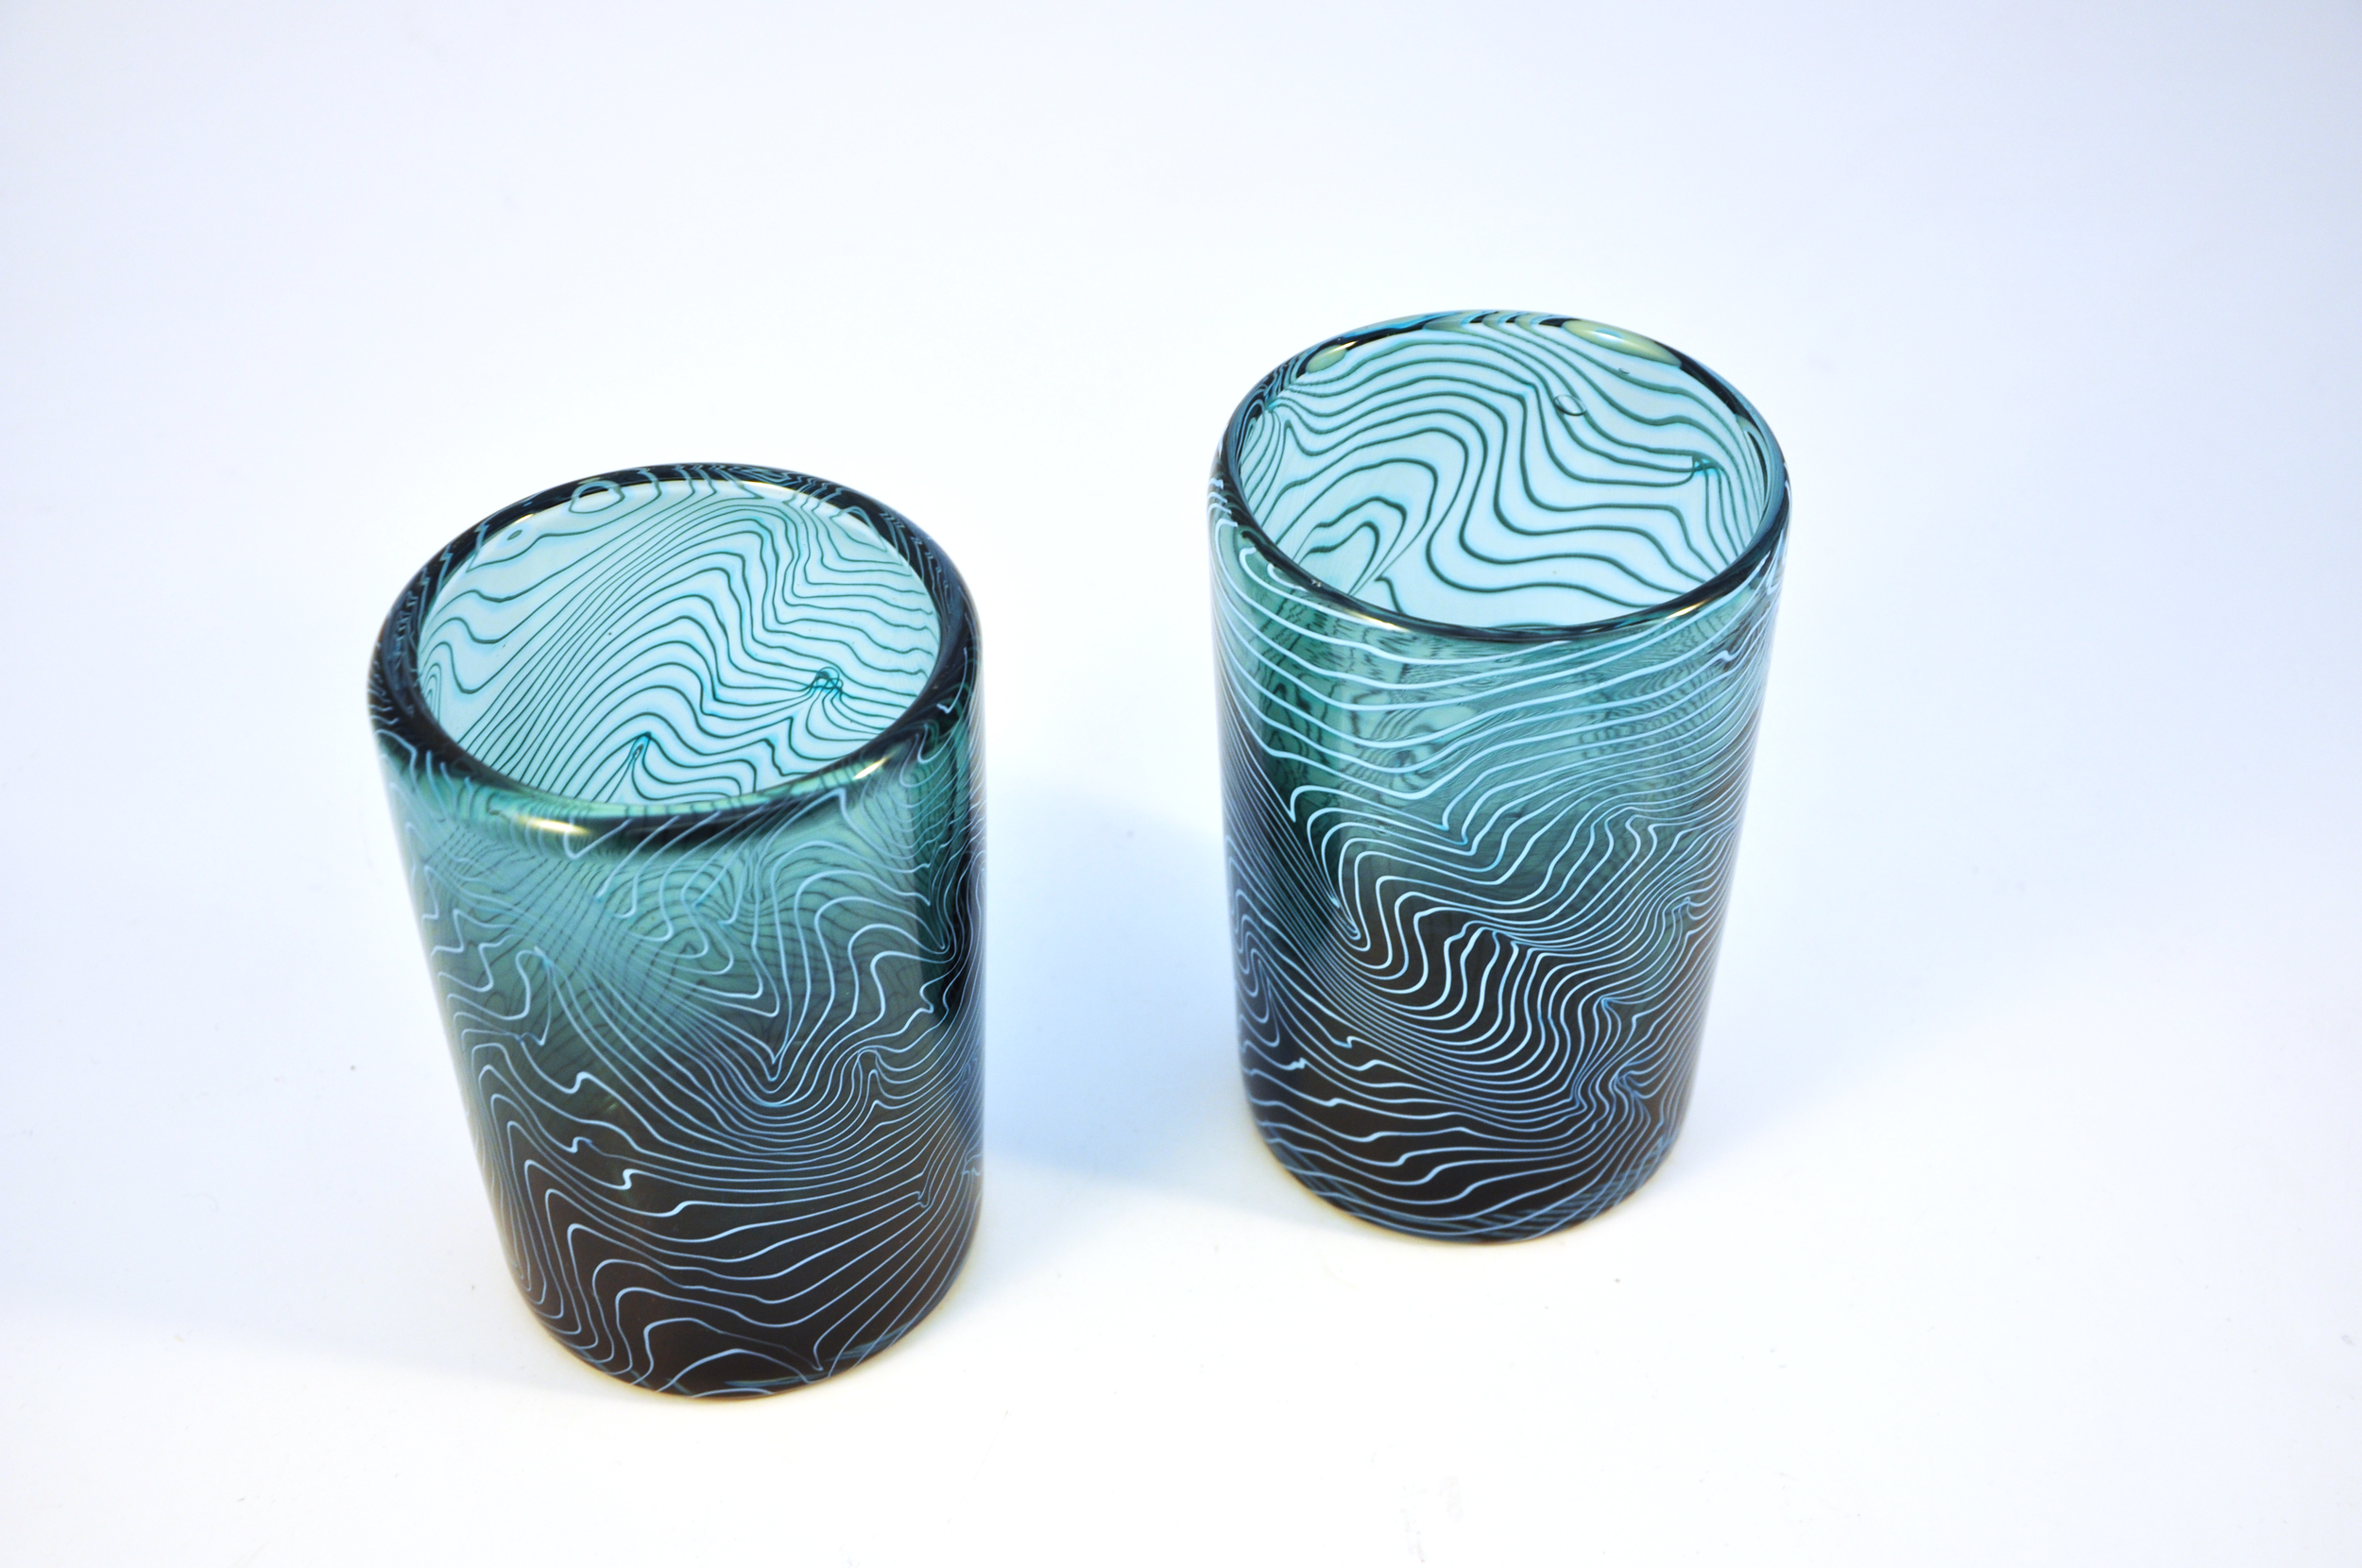 Topographic Cups. March 2019.